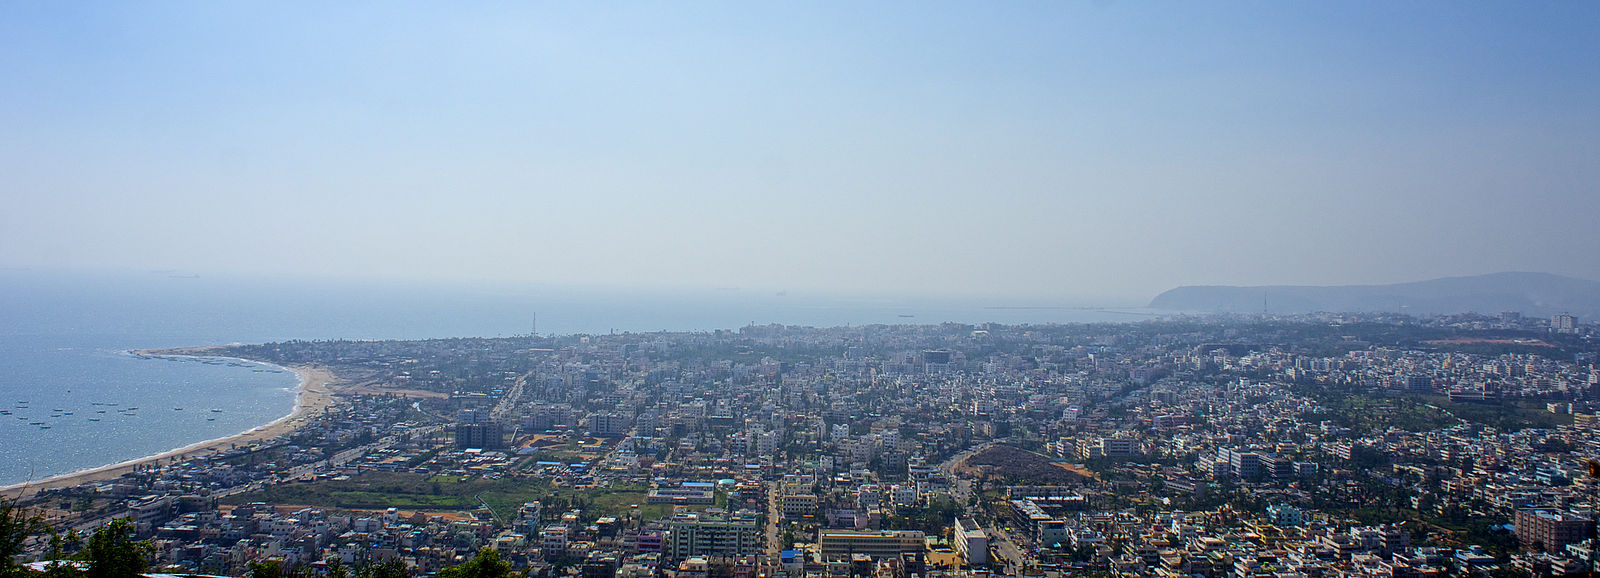 Visakhapatnam is the most populous city in Andhra Pradesh, and the 14th-largest city in India. Vizag View from Kailasagiri.jpg